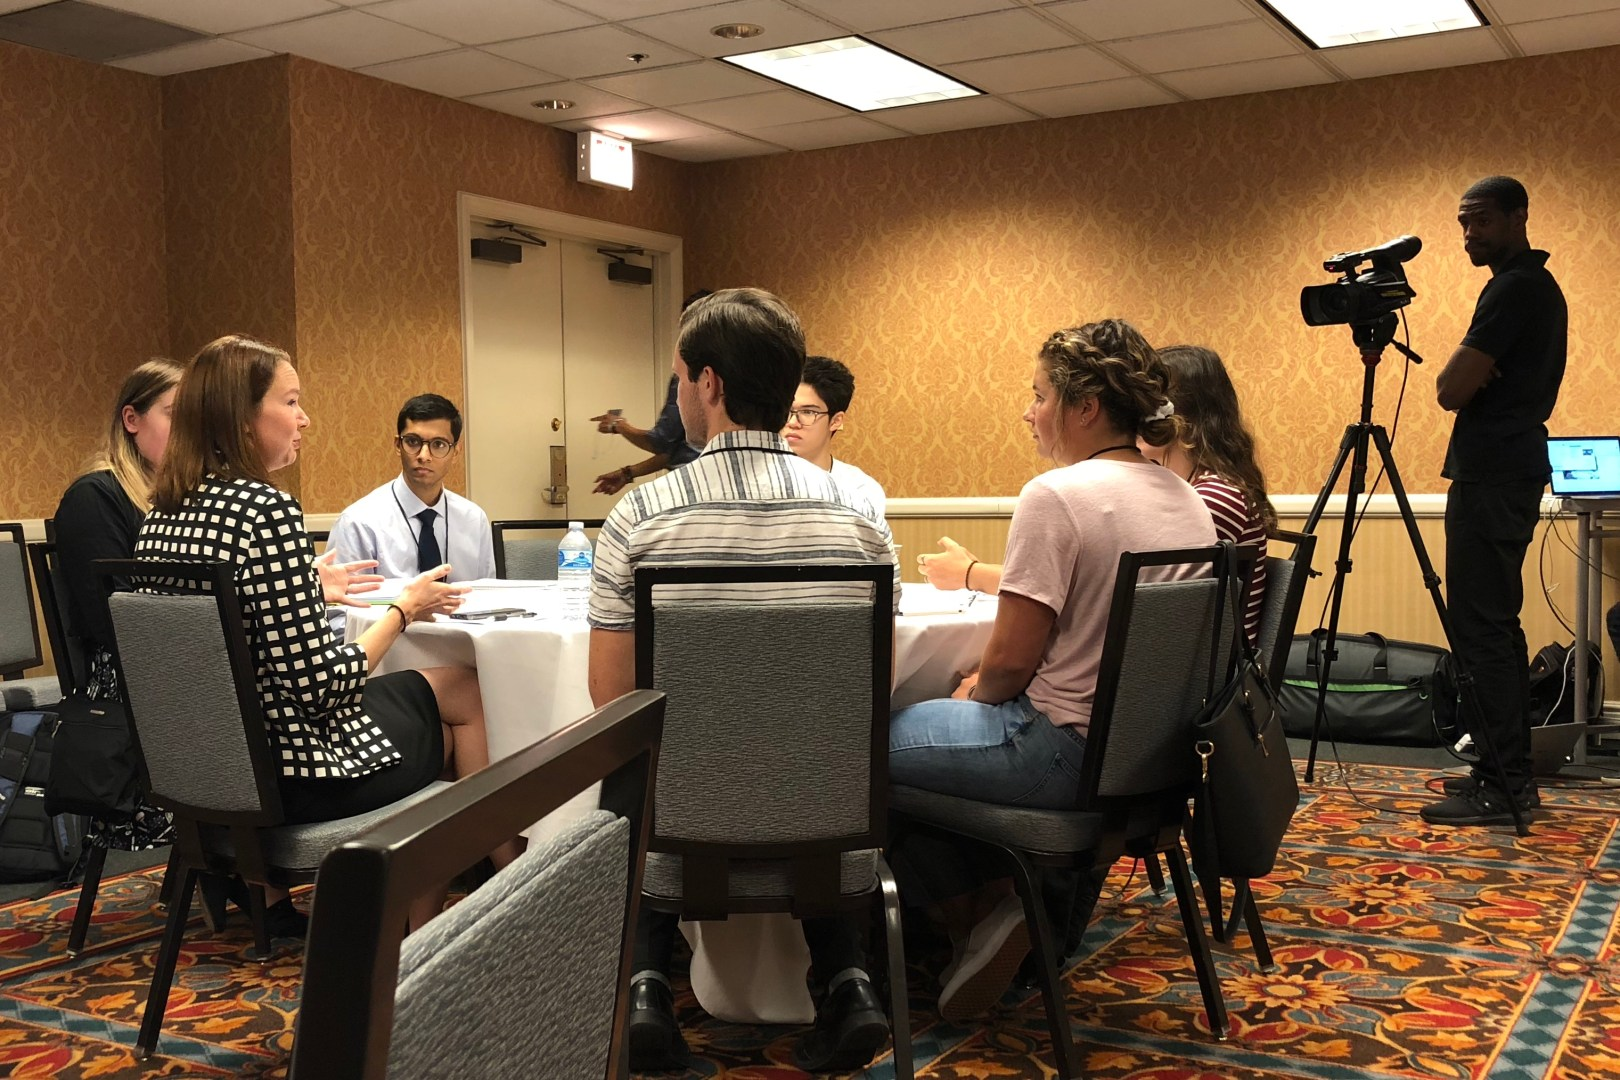 Six students sit around a round table in a conference room, in discussion, and someone is filming them